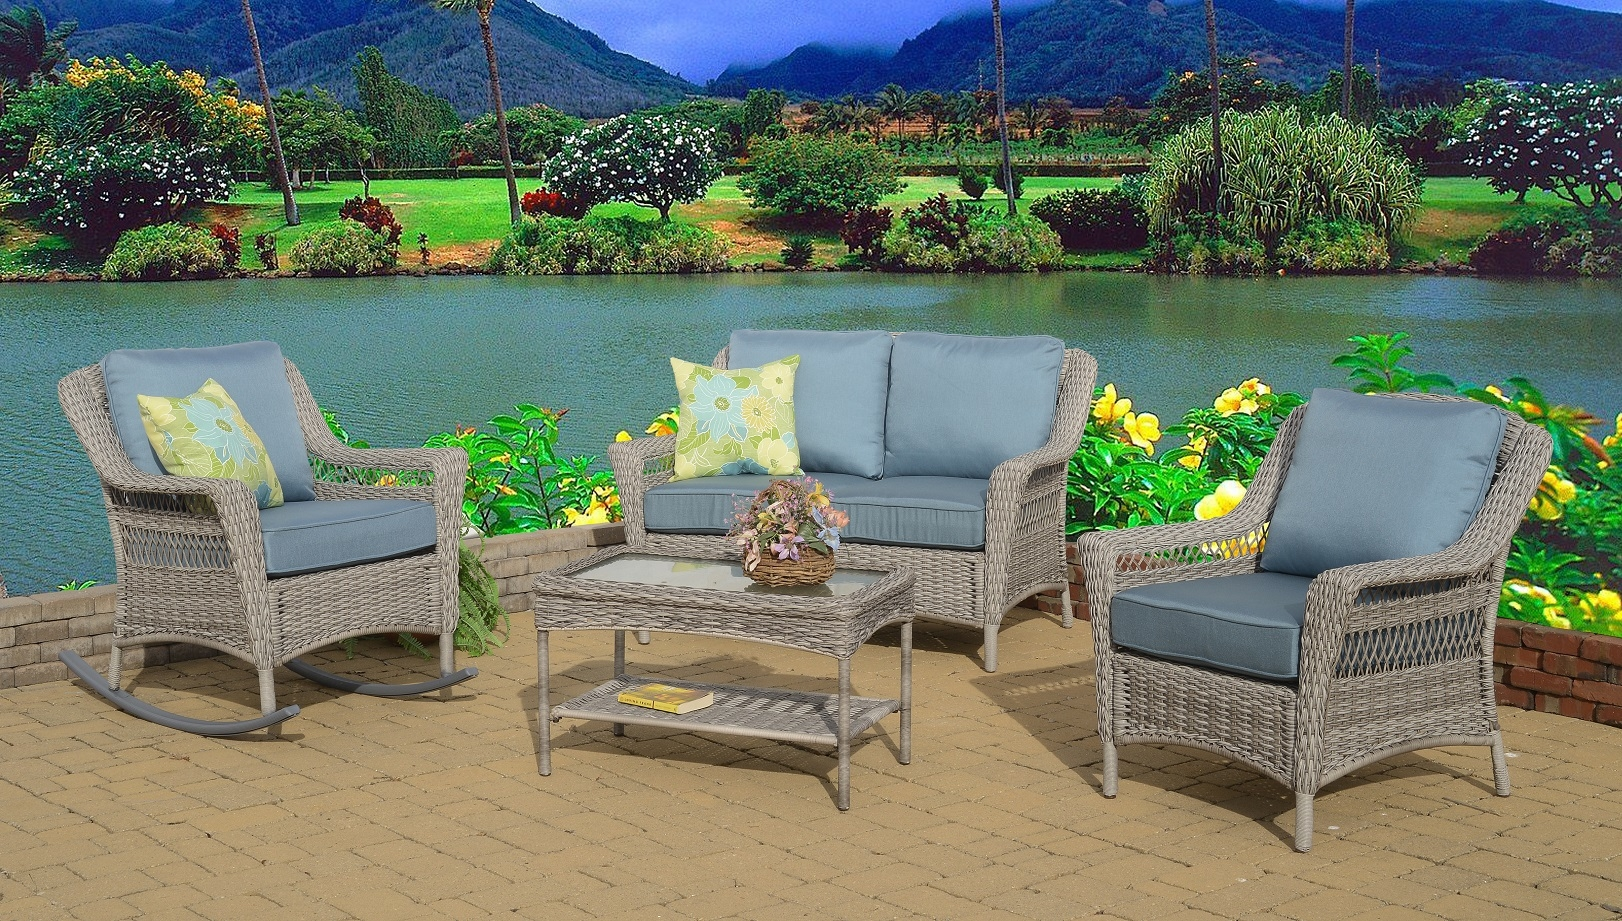 northcape patio furniture north cape summit cushions north cape may outdoor furniture